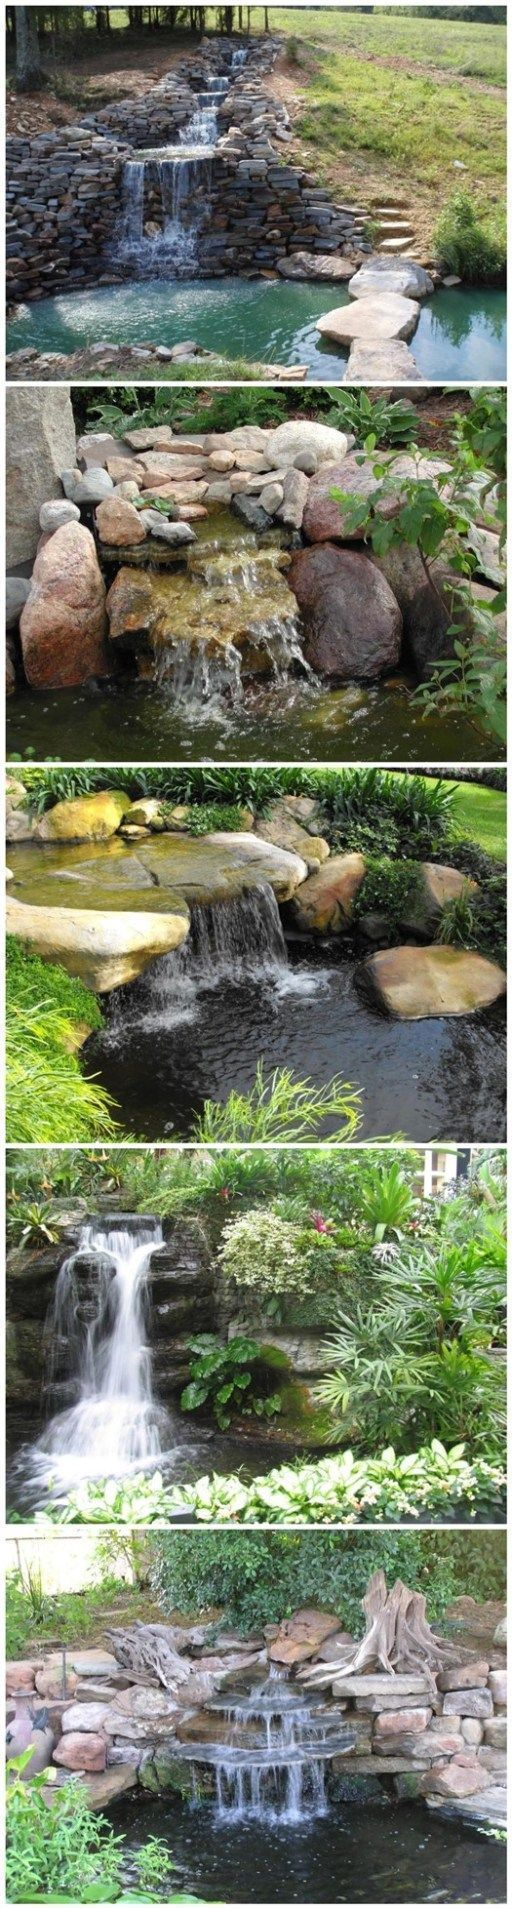 How To Build A Garden Waterfall Pond | DIY Tag Garden, ideas. pation ...